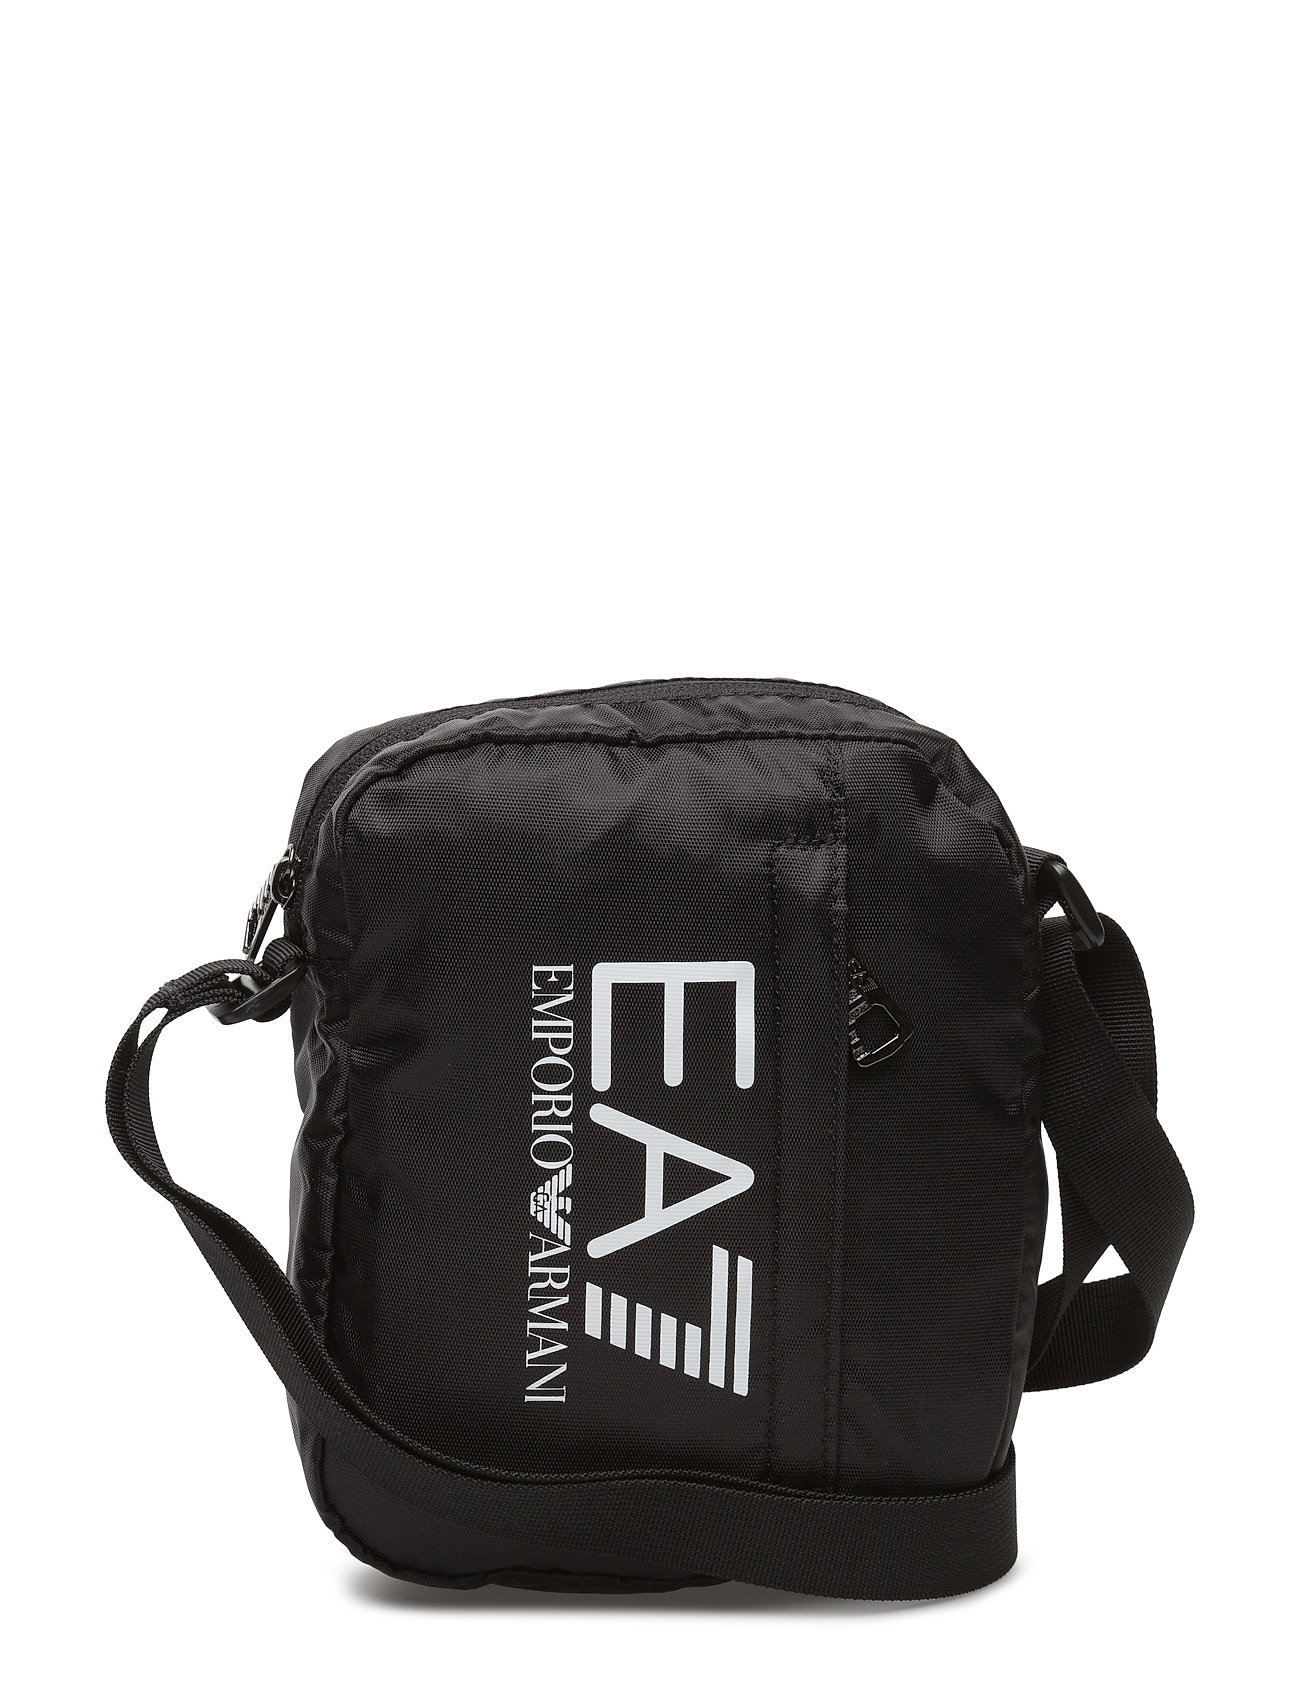 EA7 MAN'S BAG - 00020-NERO